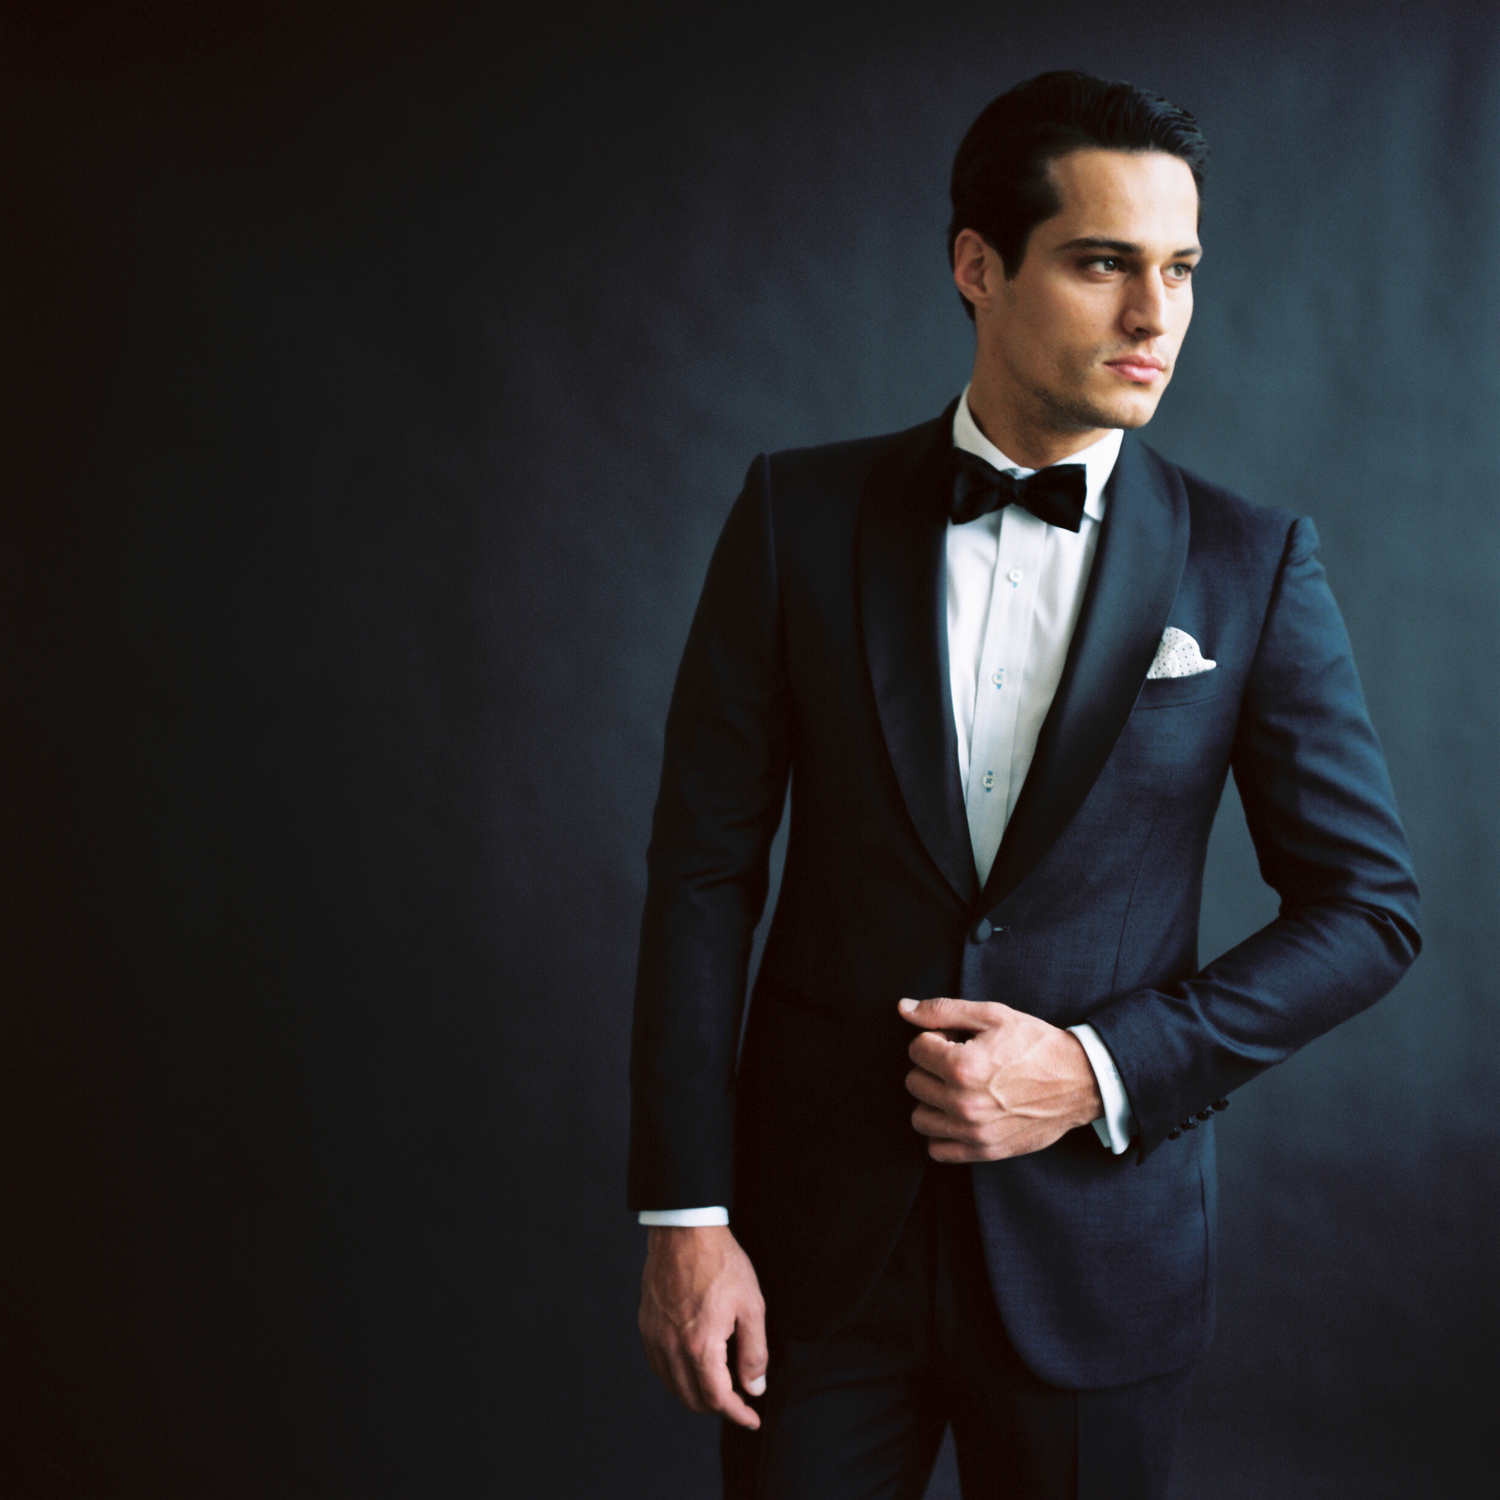 Elegans Menswear - Dinner Suit, Dinner Suit Hire, Black Tie Suit ...